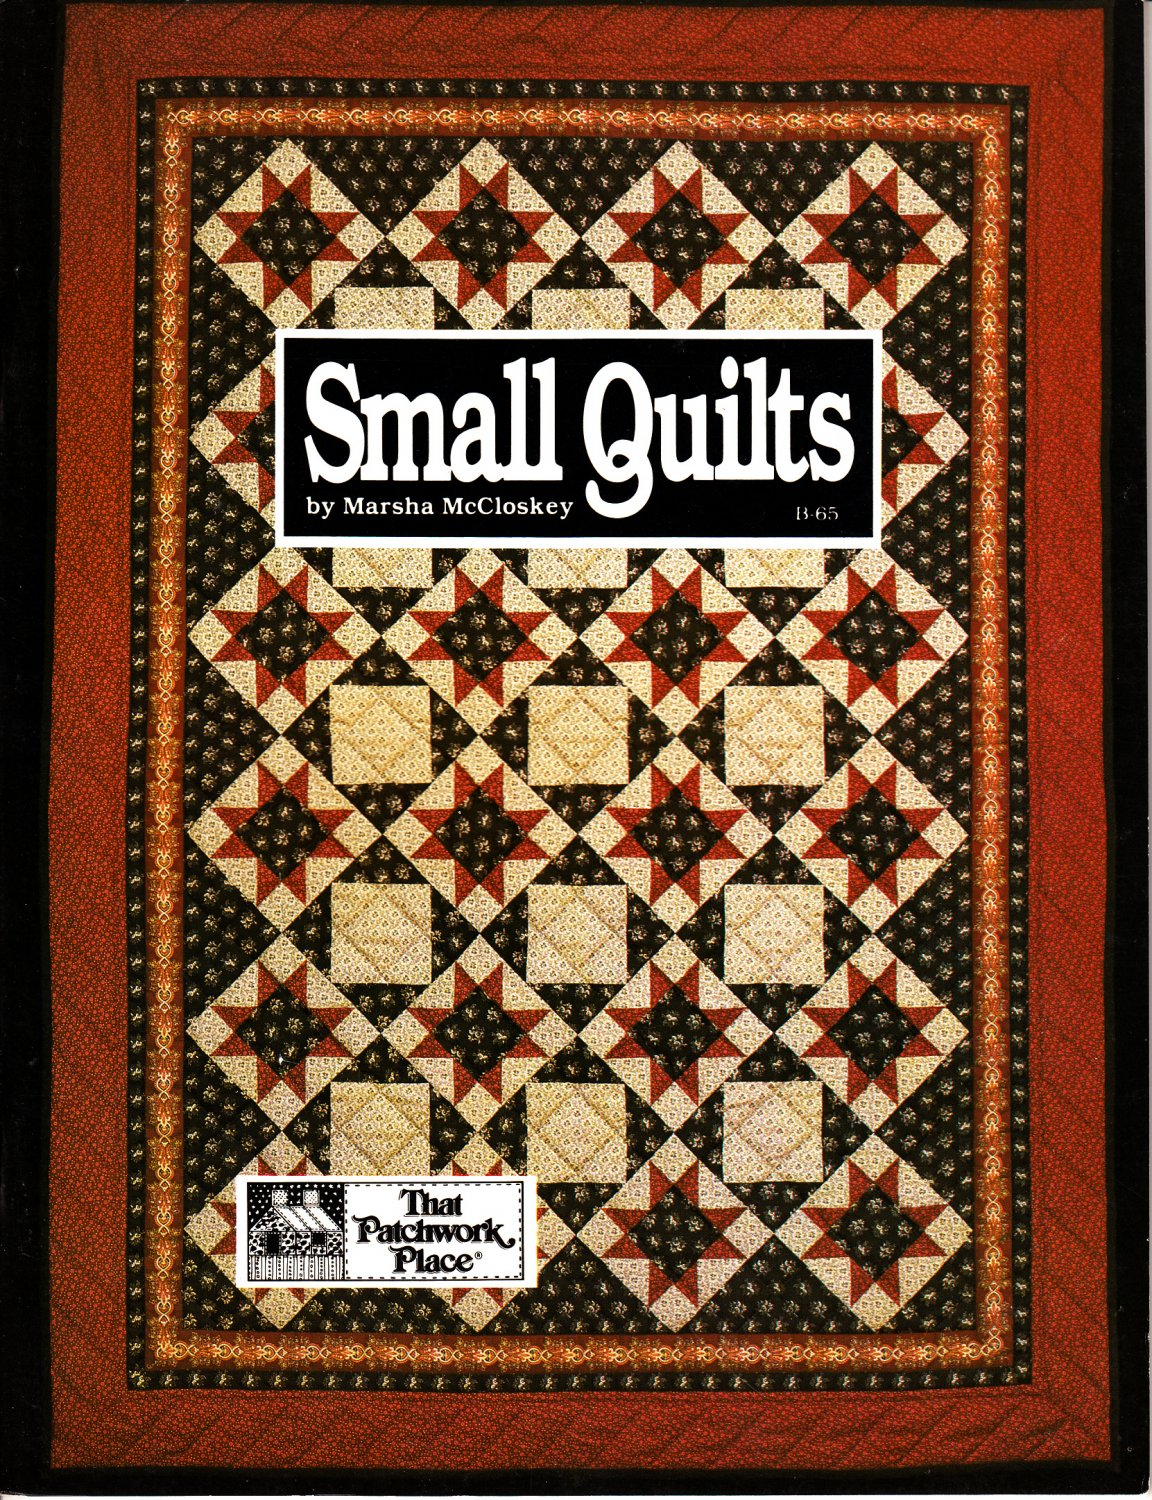 Small Quilts by Marsha McCloskey (Quilting, 1982)